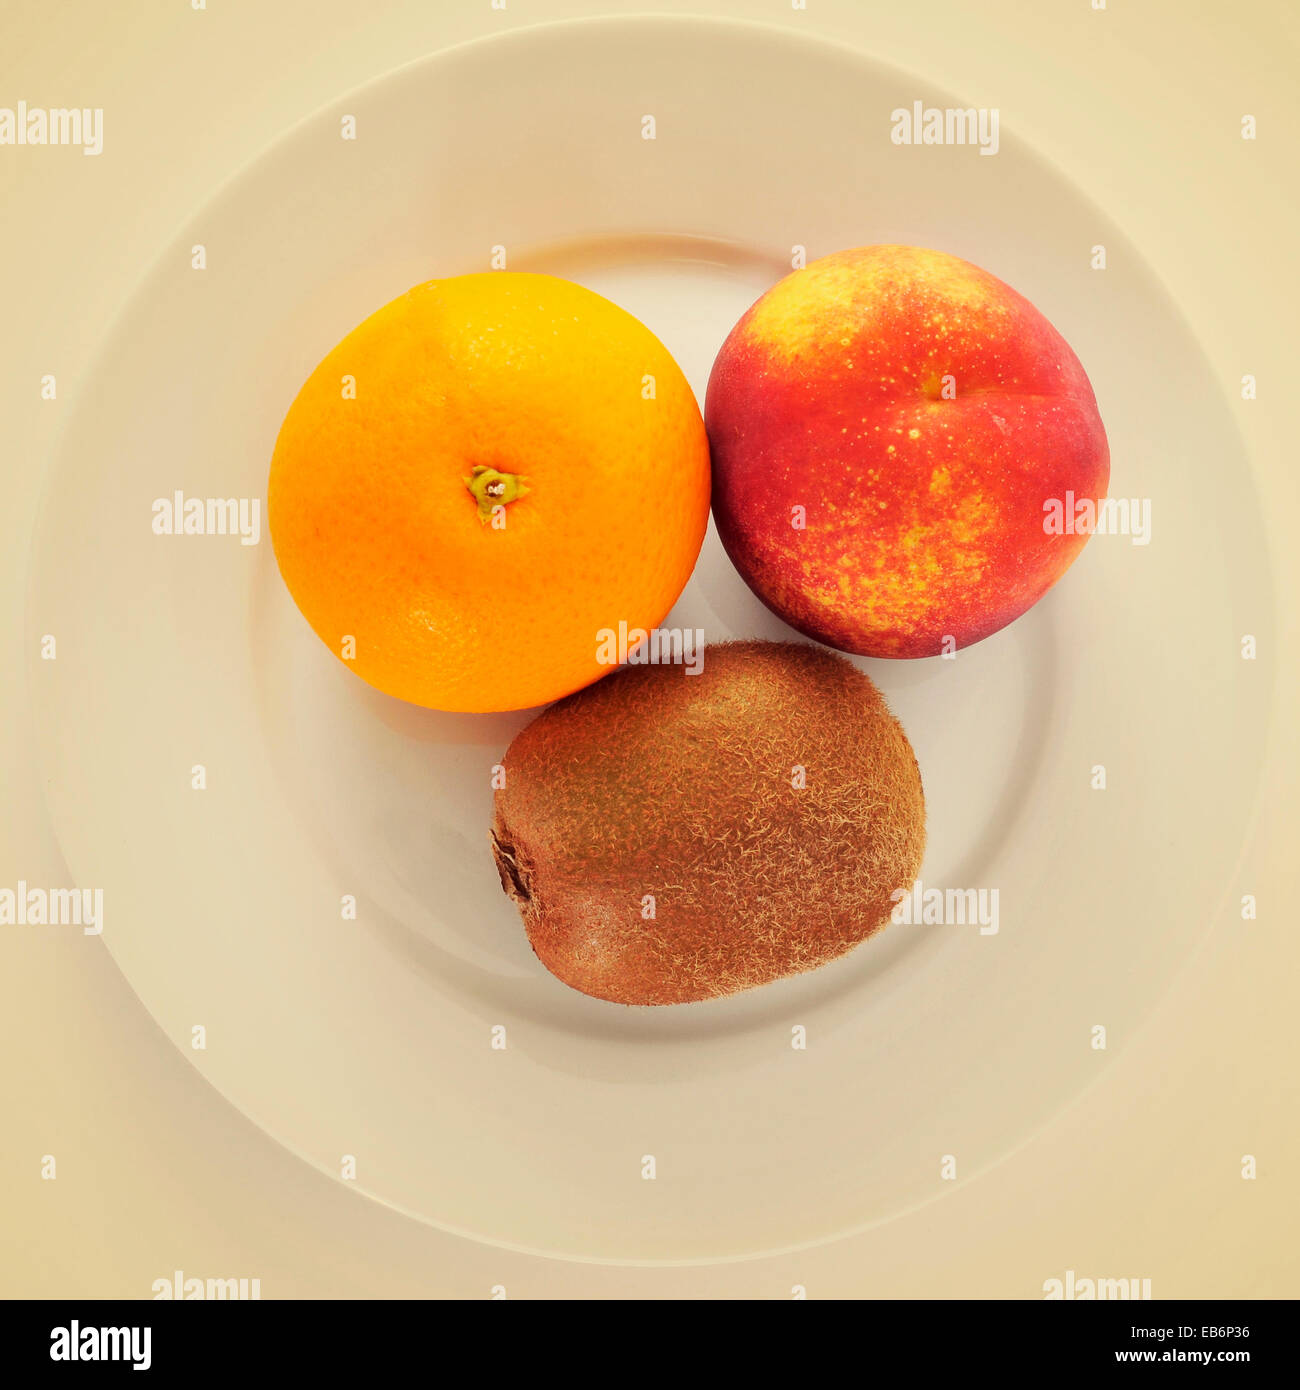 picture of a plate with an orange, a kiwi and a nectarine on a beige background, with a retro effect - Stock Image